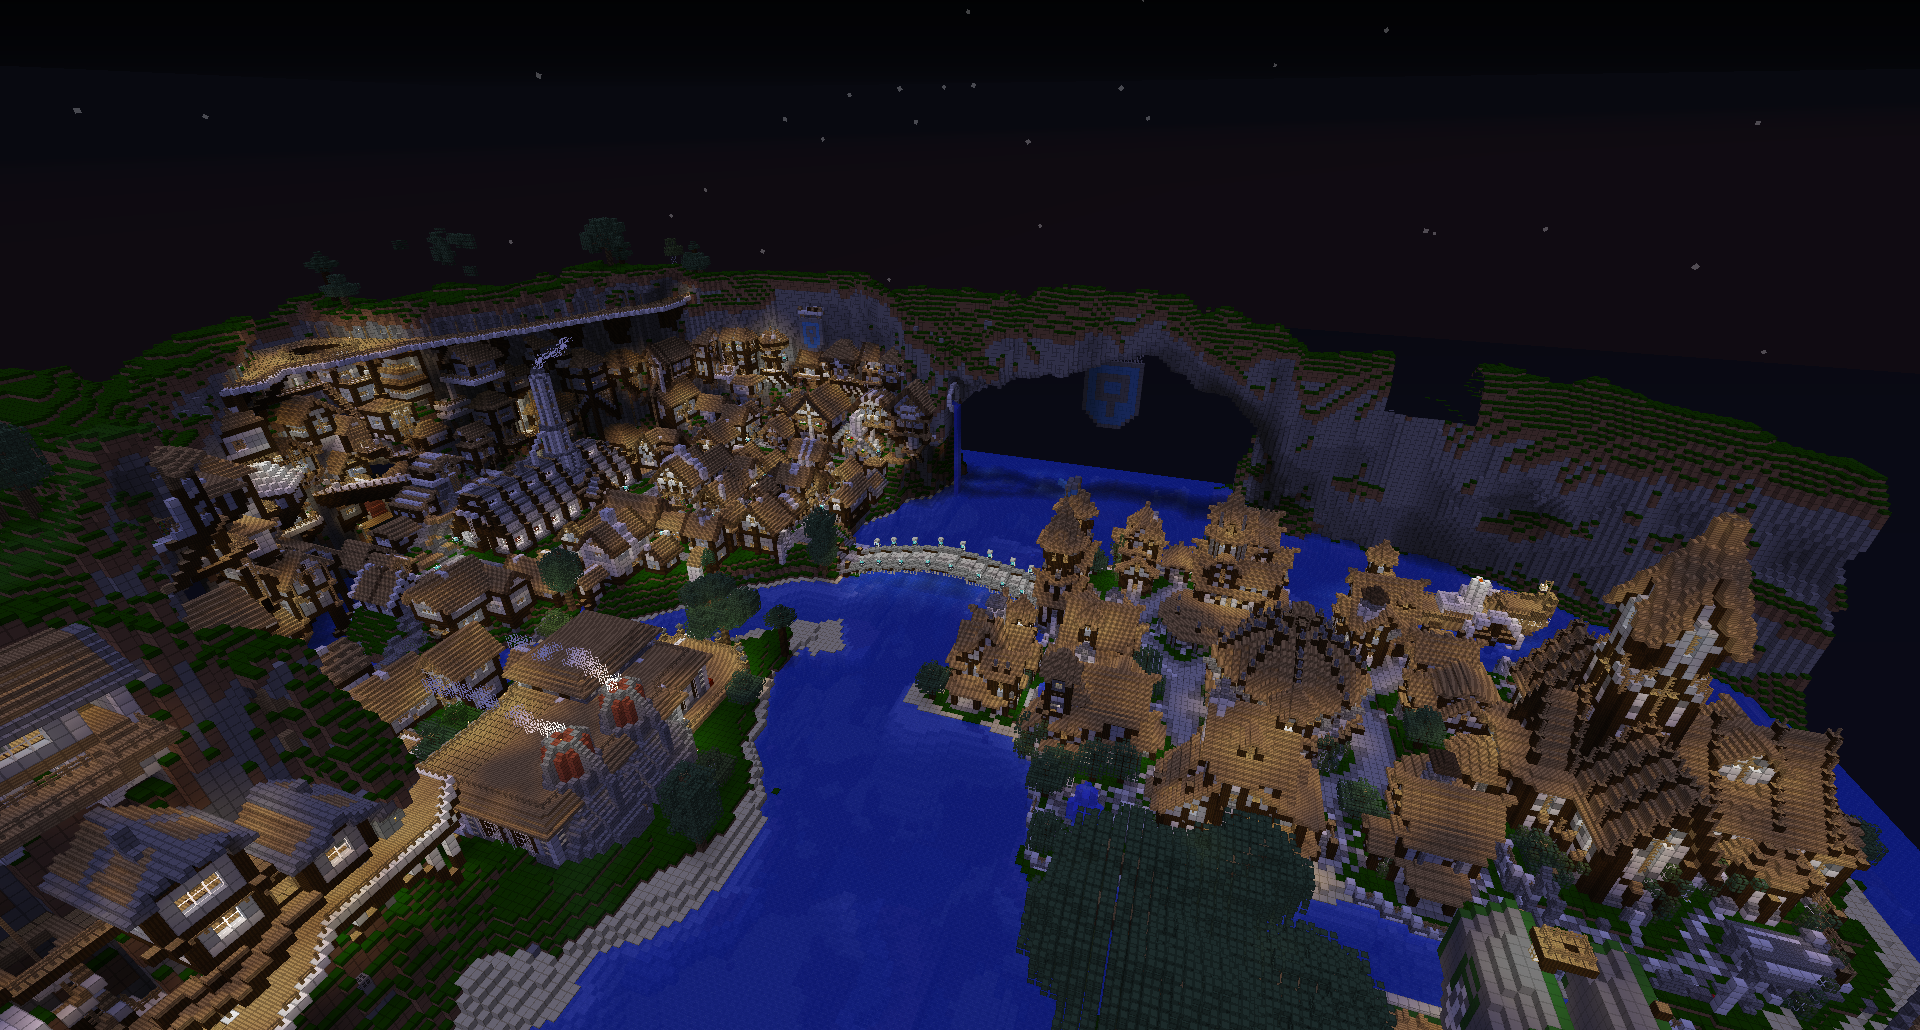 Minecraft Megabuild: A Song of Dirt and Cobble